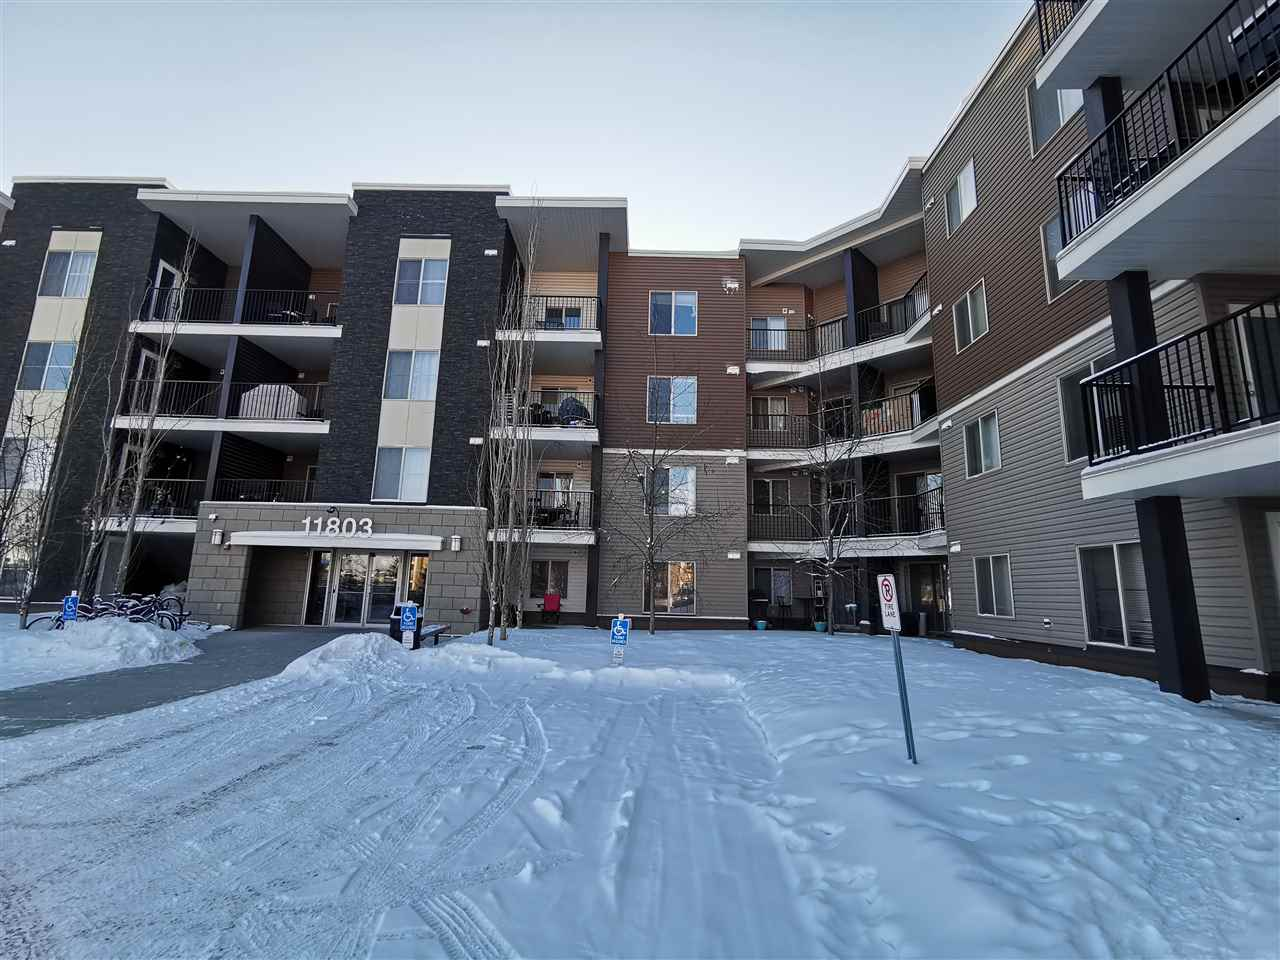 MLS® listing #E4144147 for sale located at 309 11803 22 Avenue